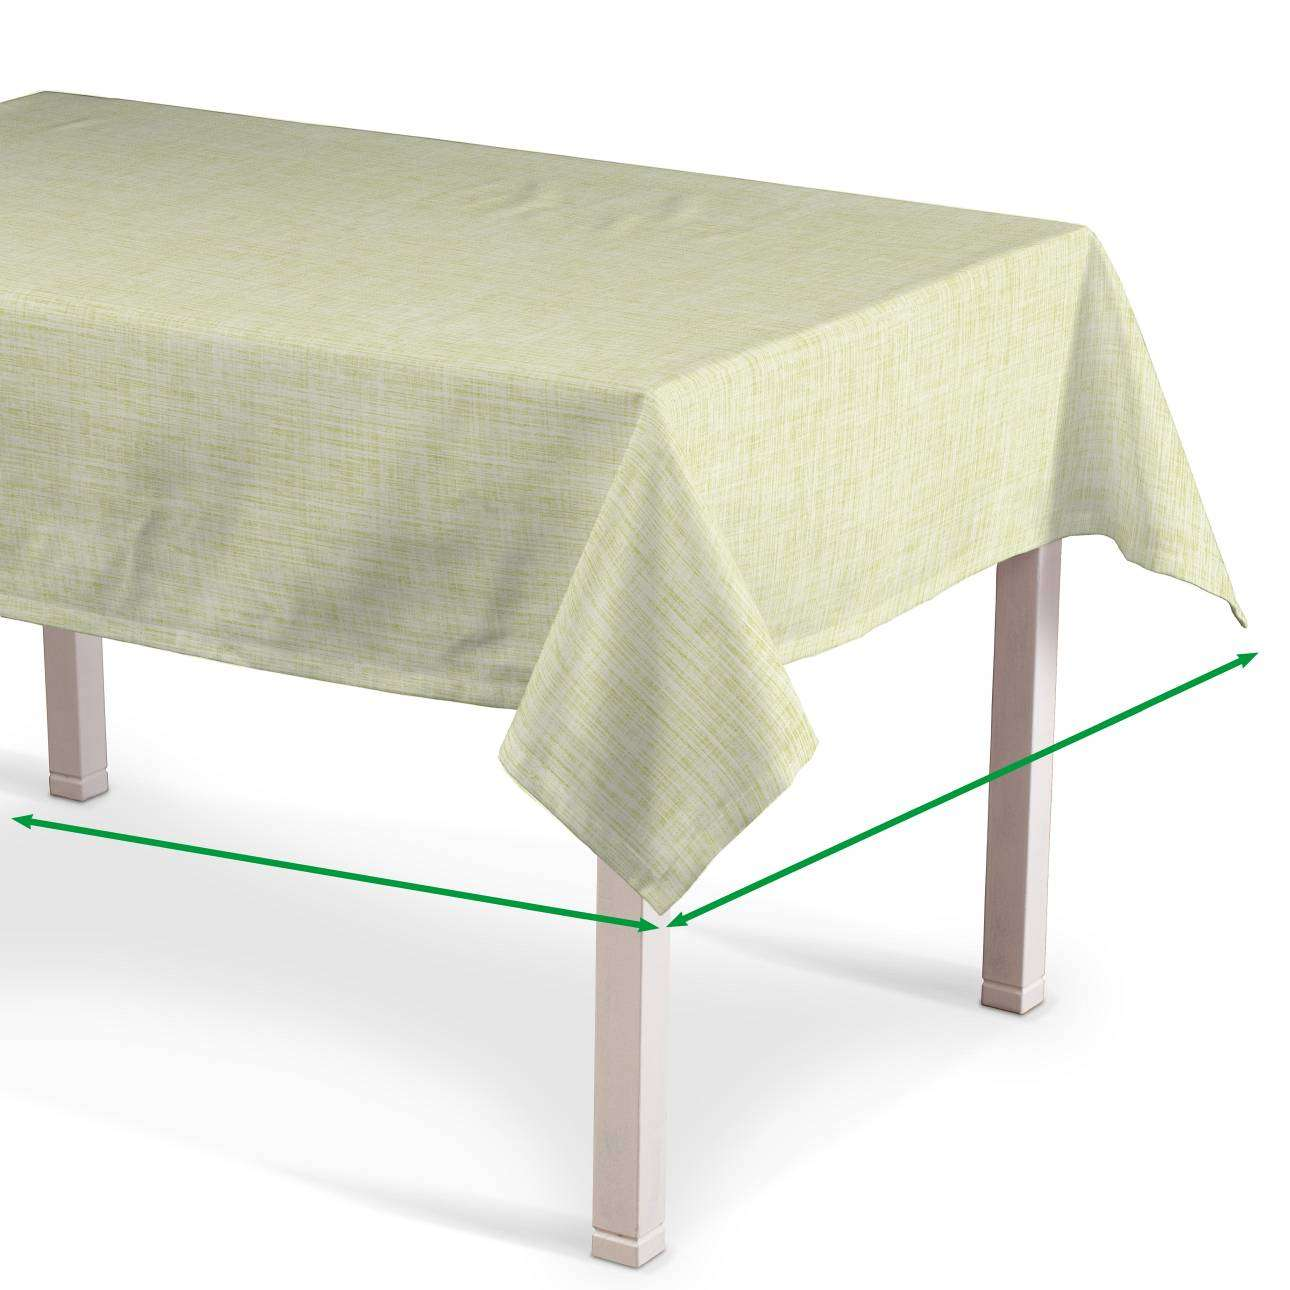 Rectangular tablecloth in collection Aquarelle, fabric: 140-73